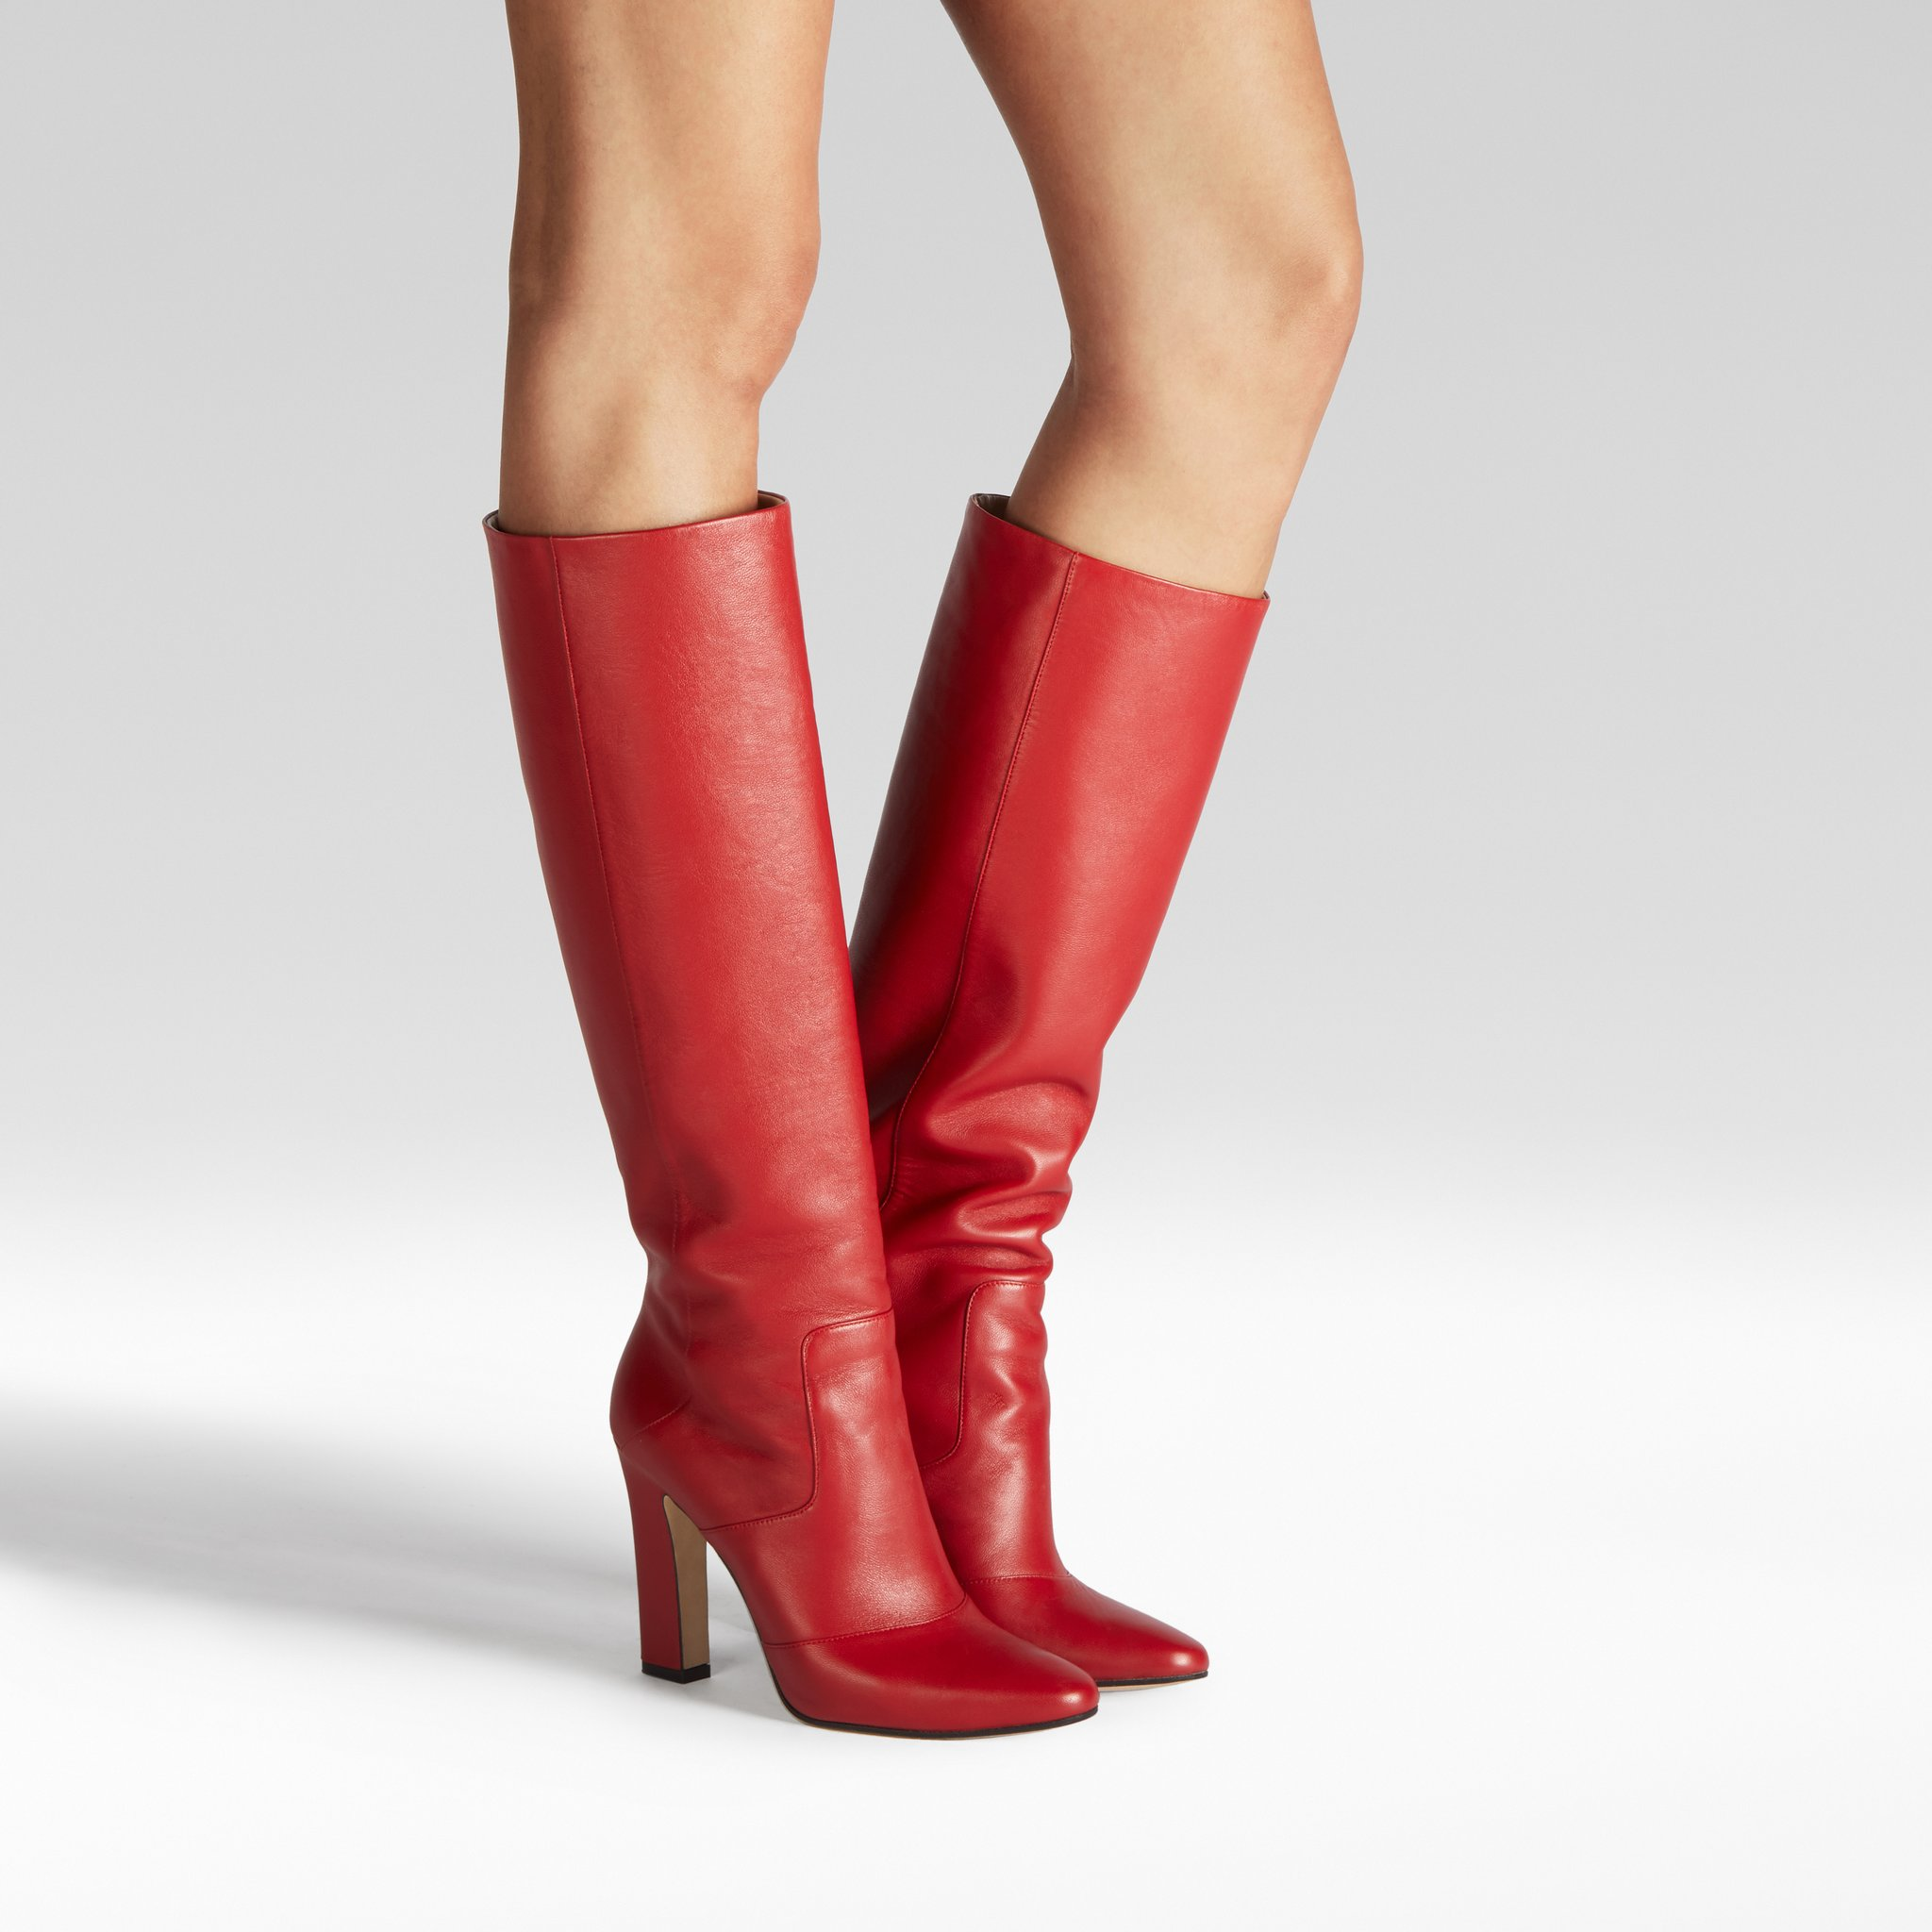 0d993a29eef Which Tamara Mellon boots say you  - My Fashion Wants